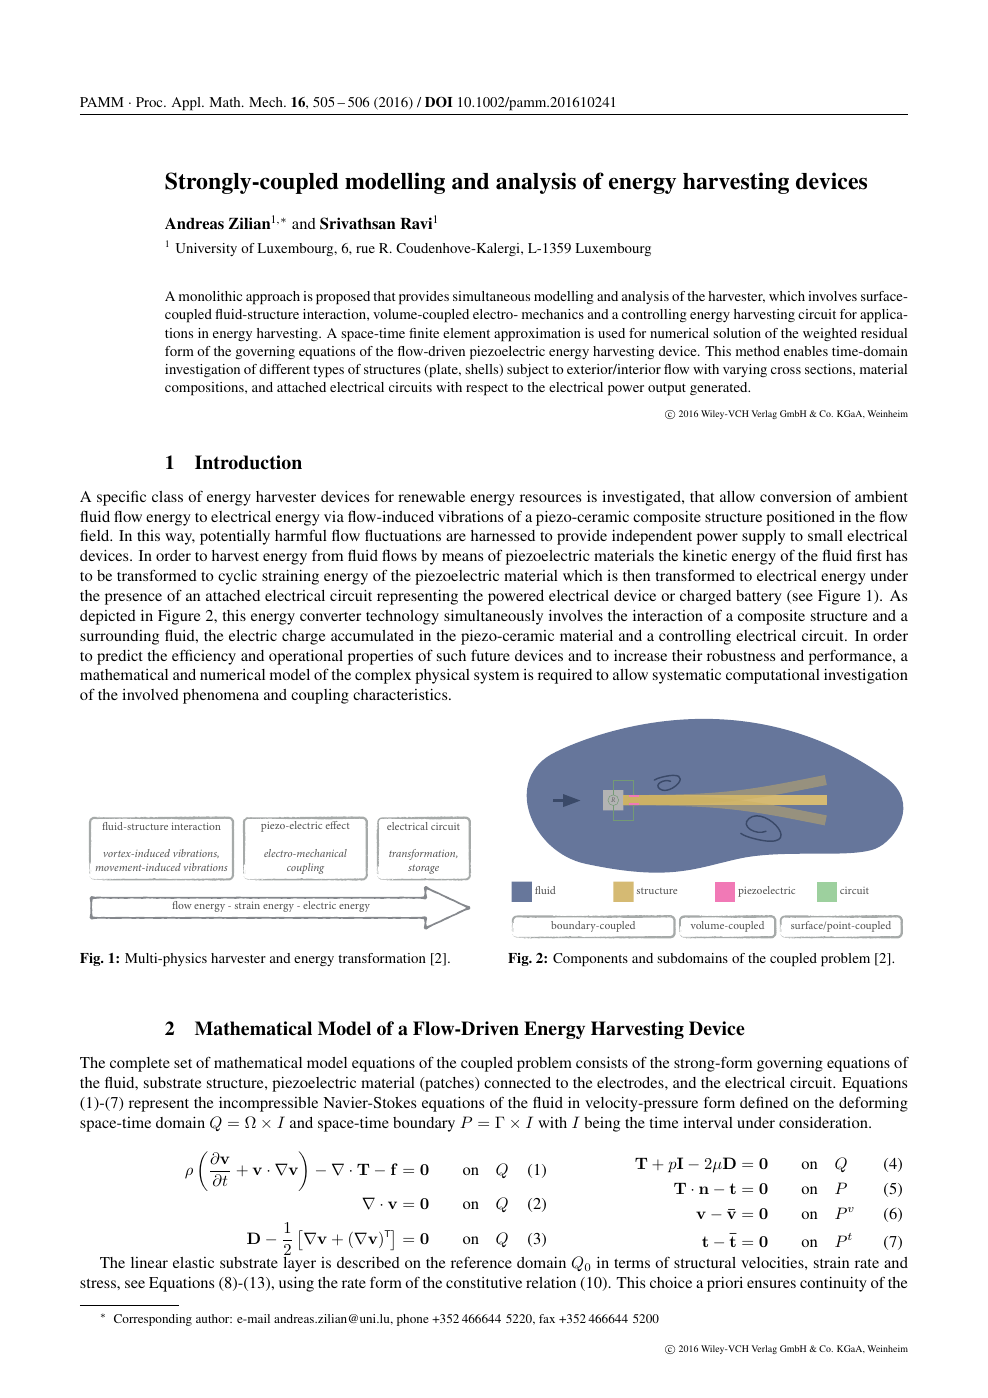 Strongly-coupled modelling and analysis of energy harvesting devices